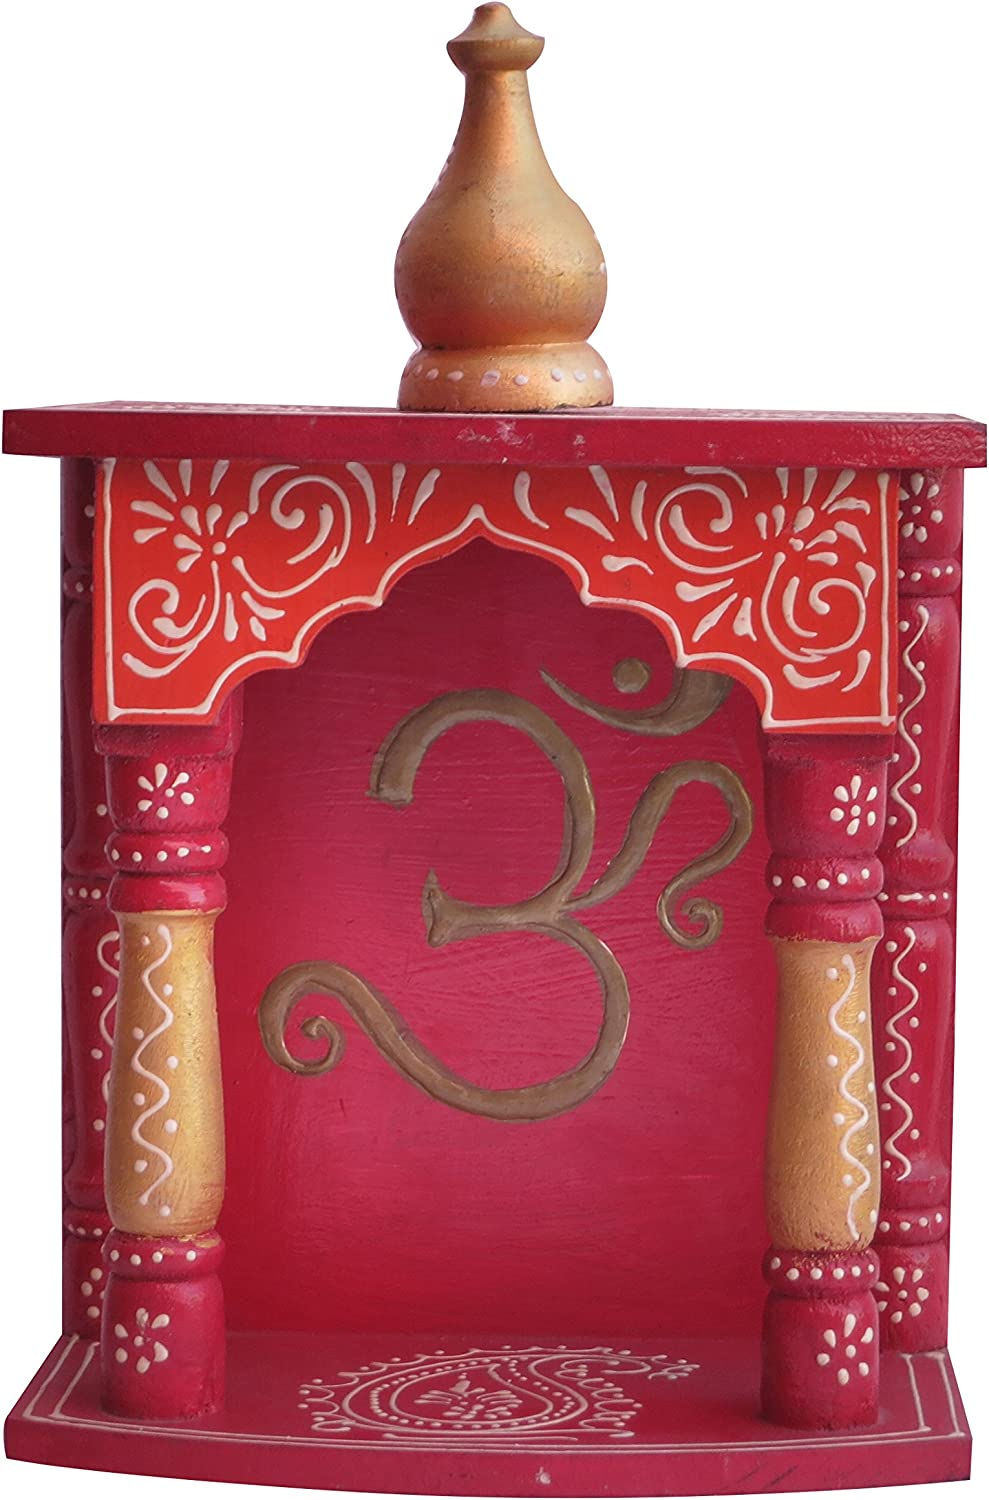 Home Temple/Wooden Temple/Pooja Mandir/Mandap/Wooden Temple/Mandir with om Symbol Rajasthani Emboss Work on it, A Auspicious, Religious Perfect for Home, Hand Made Handcrafted Temple